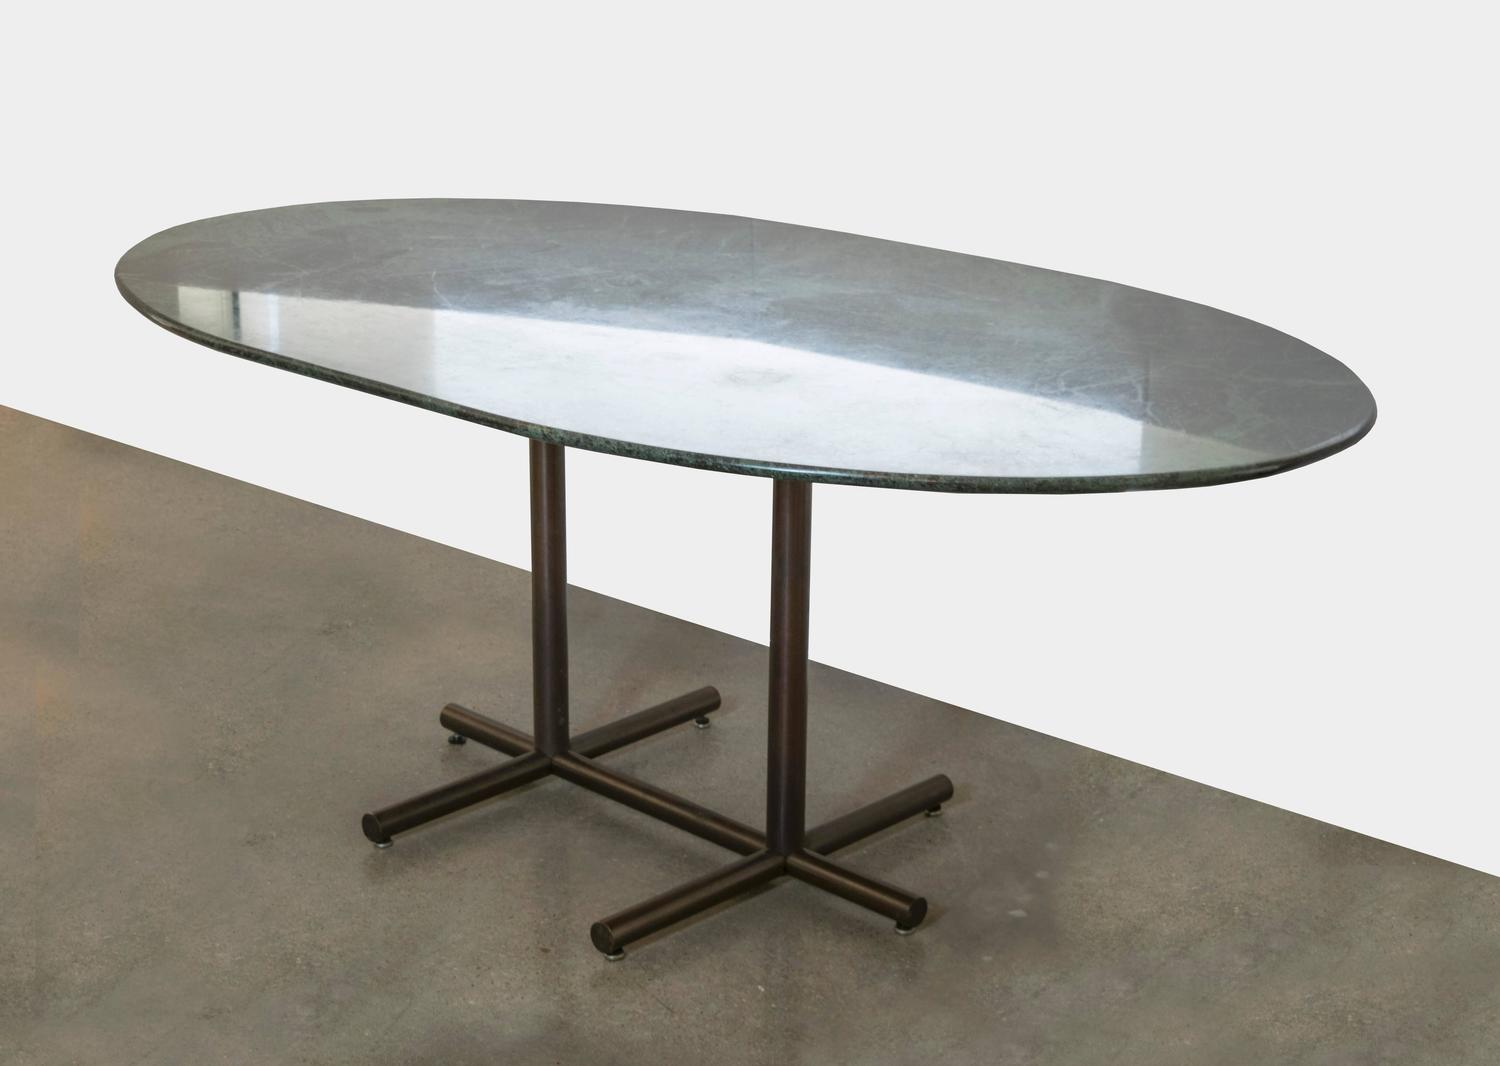 Vintage Dark Green Marble Dining TableDesk For Sale at  : 17z from www.1stdibs.com size 1500 x 1066 jpeg 75kB